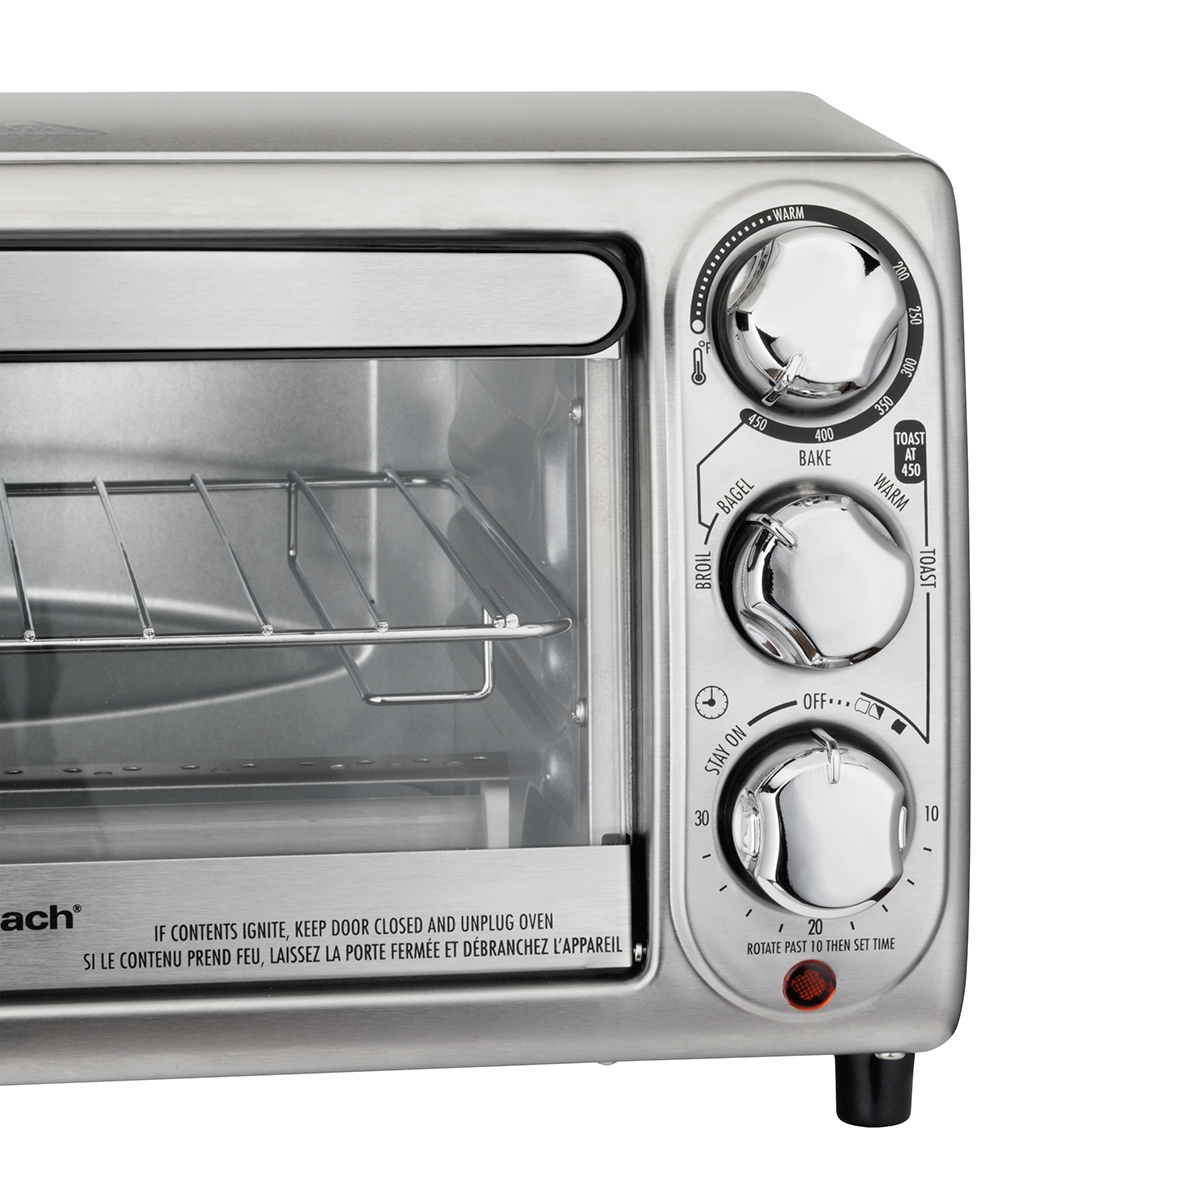 Toaster Oven (31143)